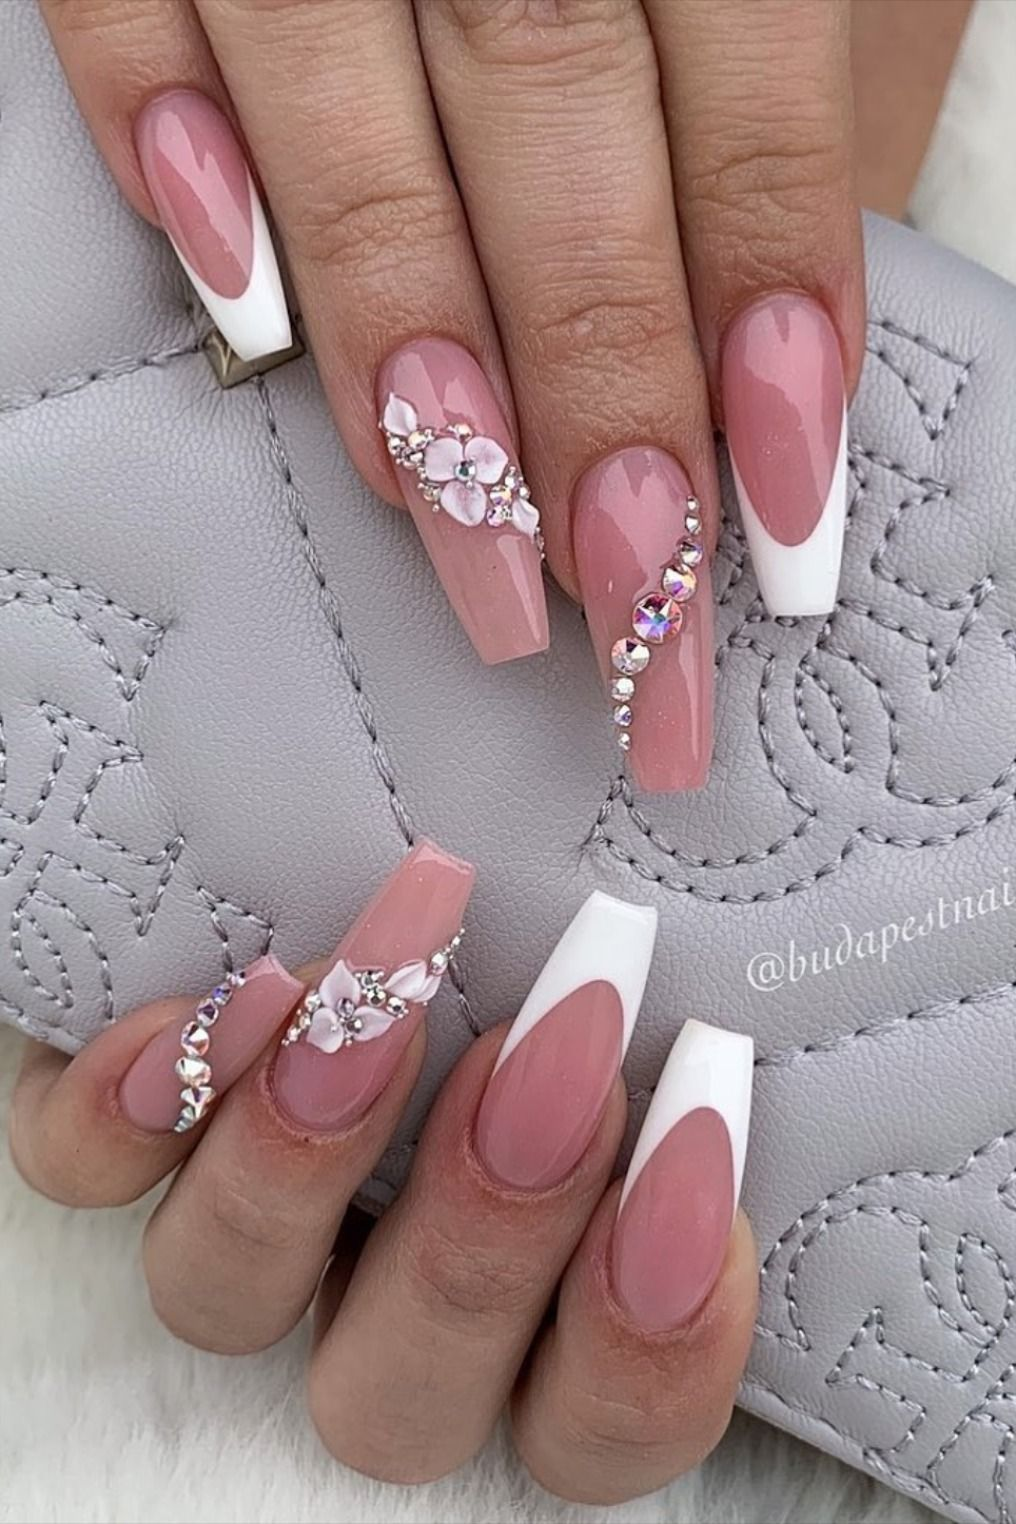 9 Stunning Modern French Manicure Ideas Stylish Belles In 2020 Gel Nail Art Designs Classy Nail Designs Black Acrylic Nail Designs